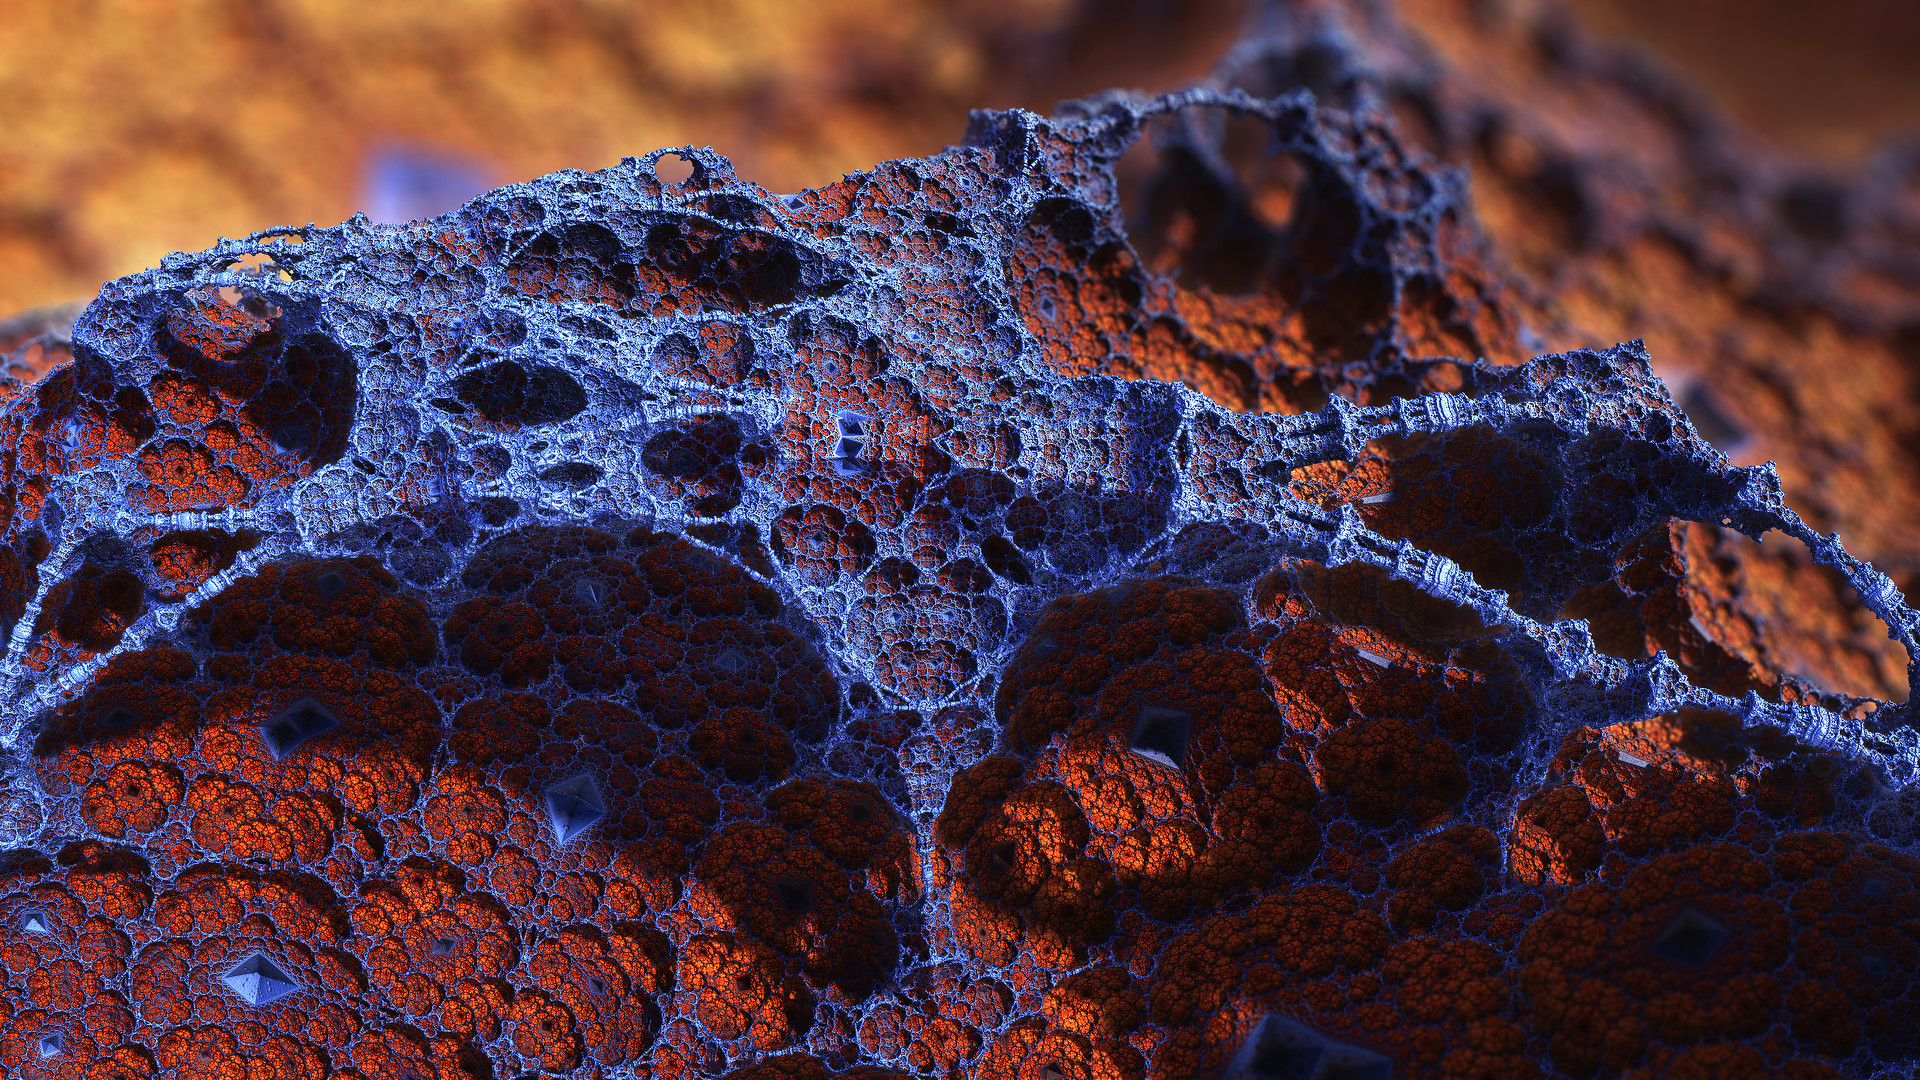 1920x1080 3d Fractal Wallpapers High Definition with HD Wallpaper Resolution   px 5.10 MB